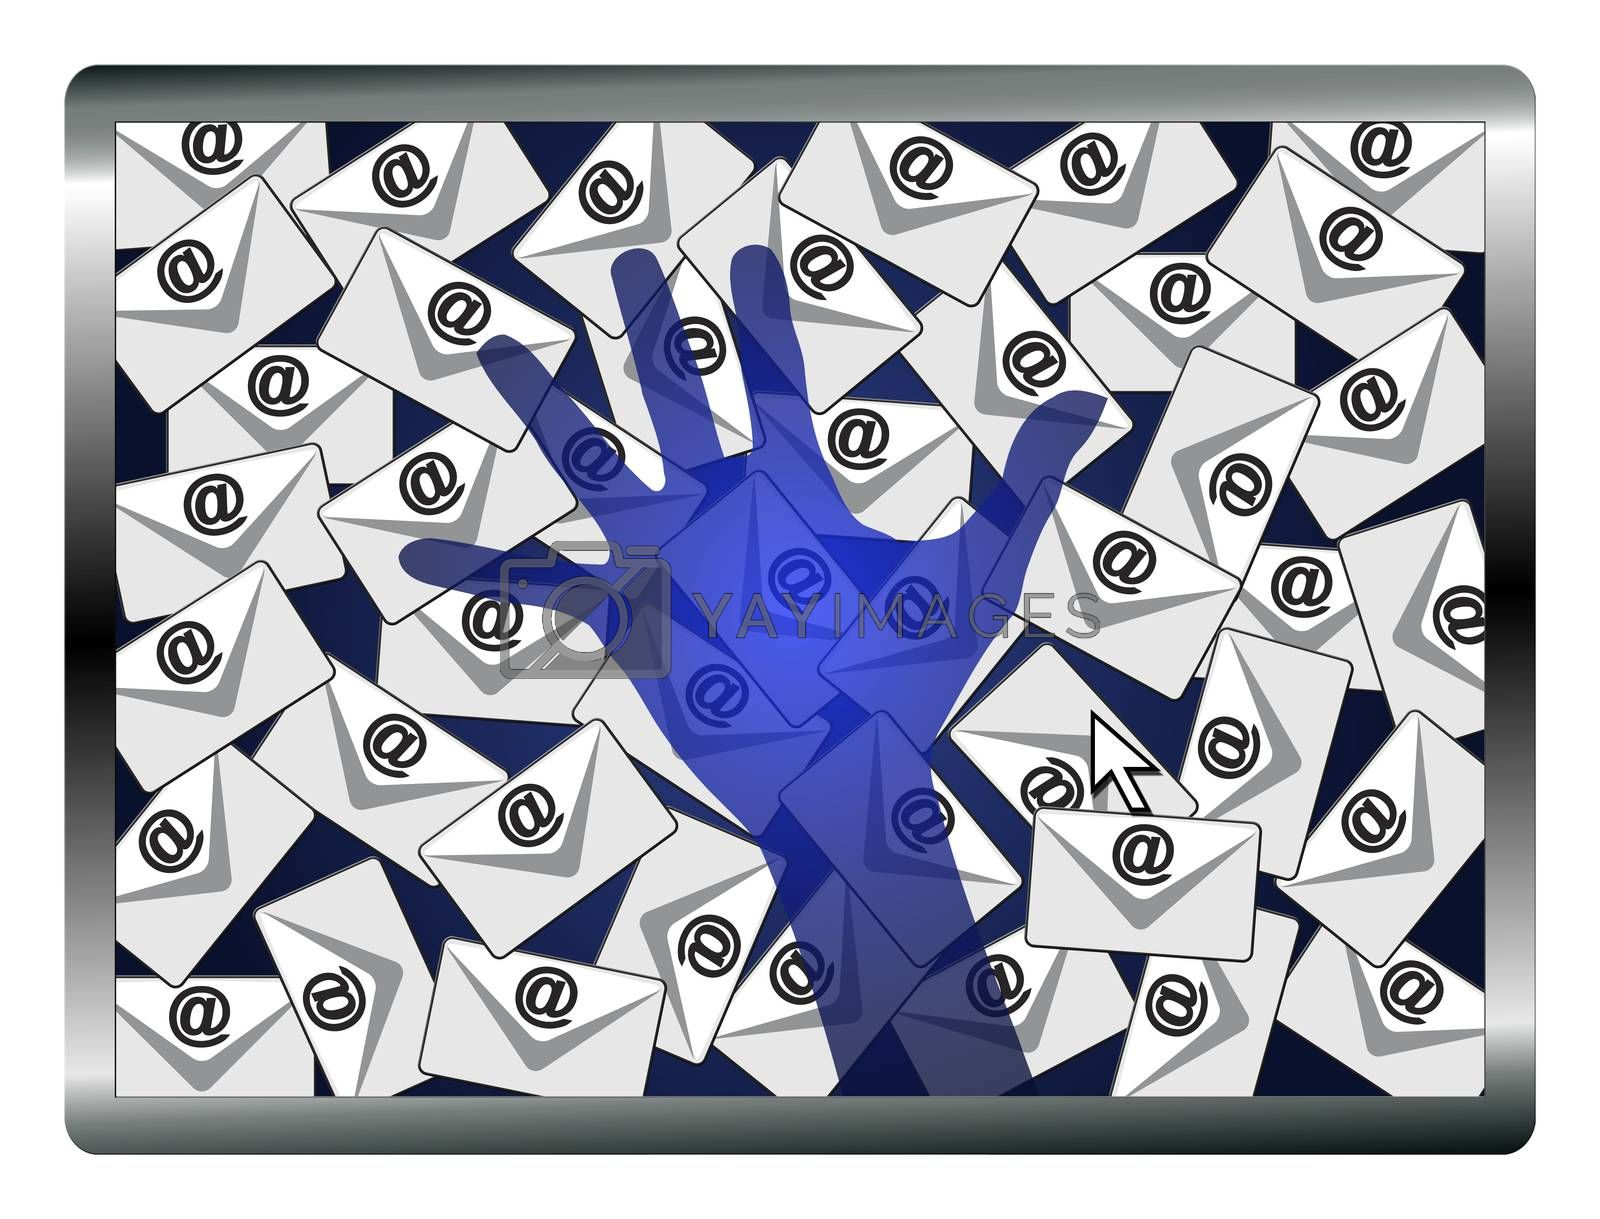 Concept sign of a security system monitoring computers and emails